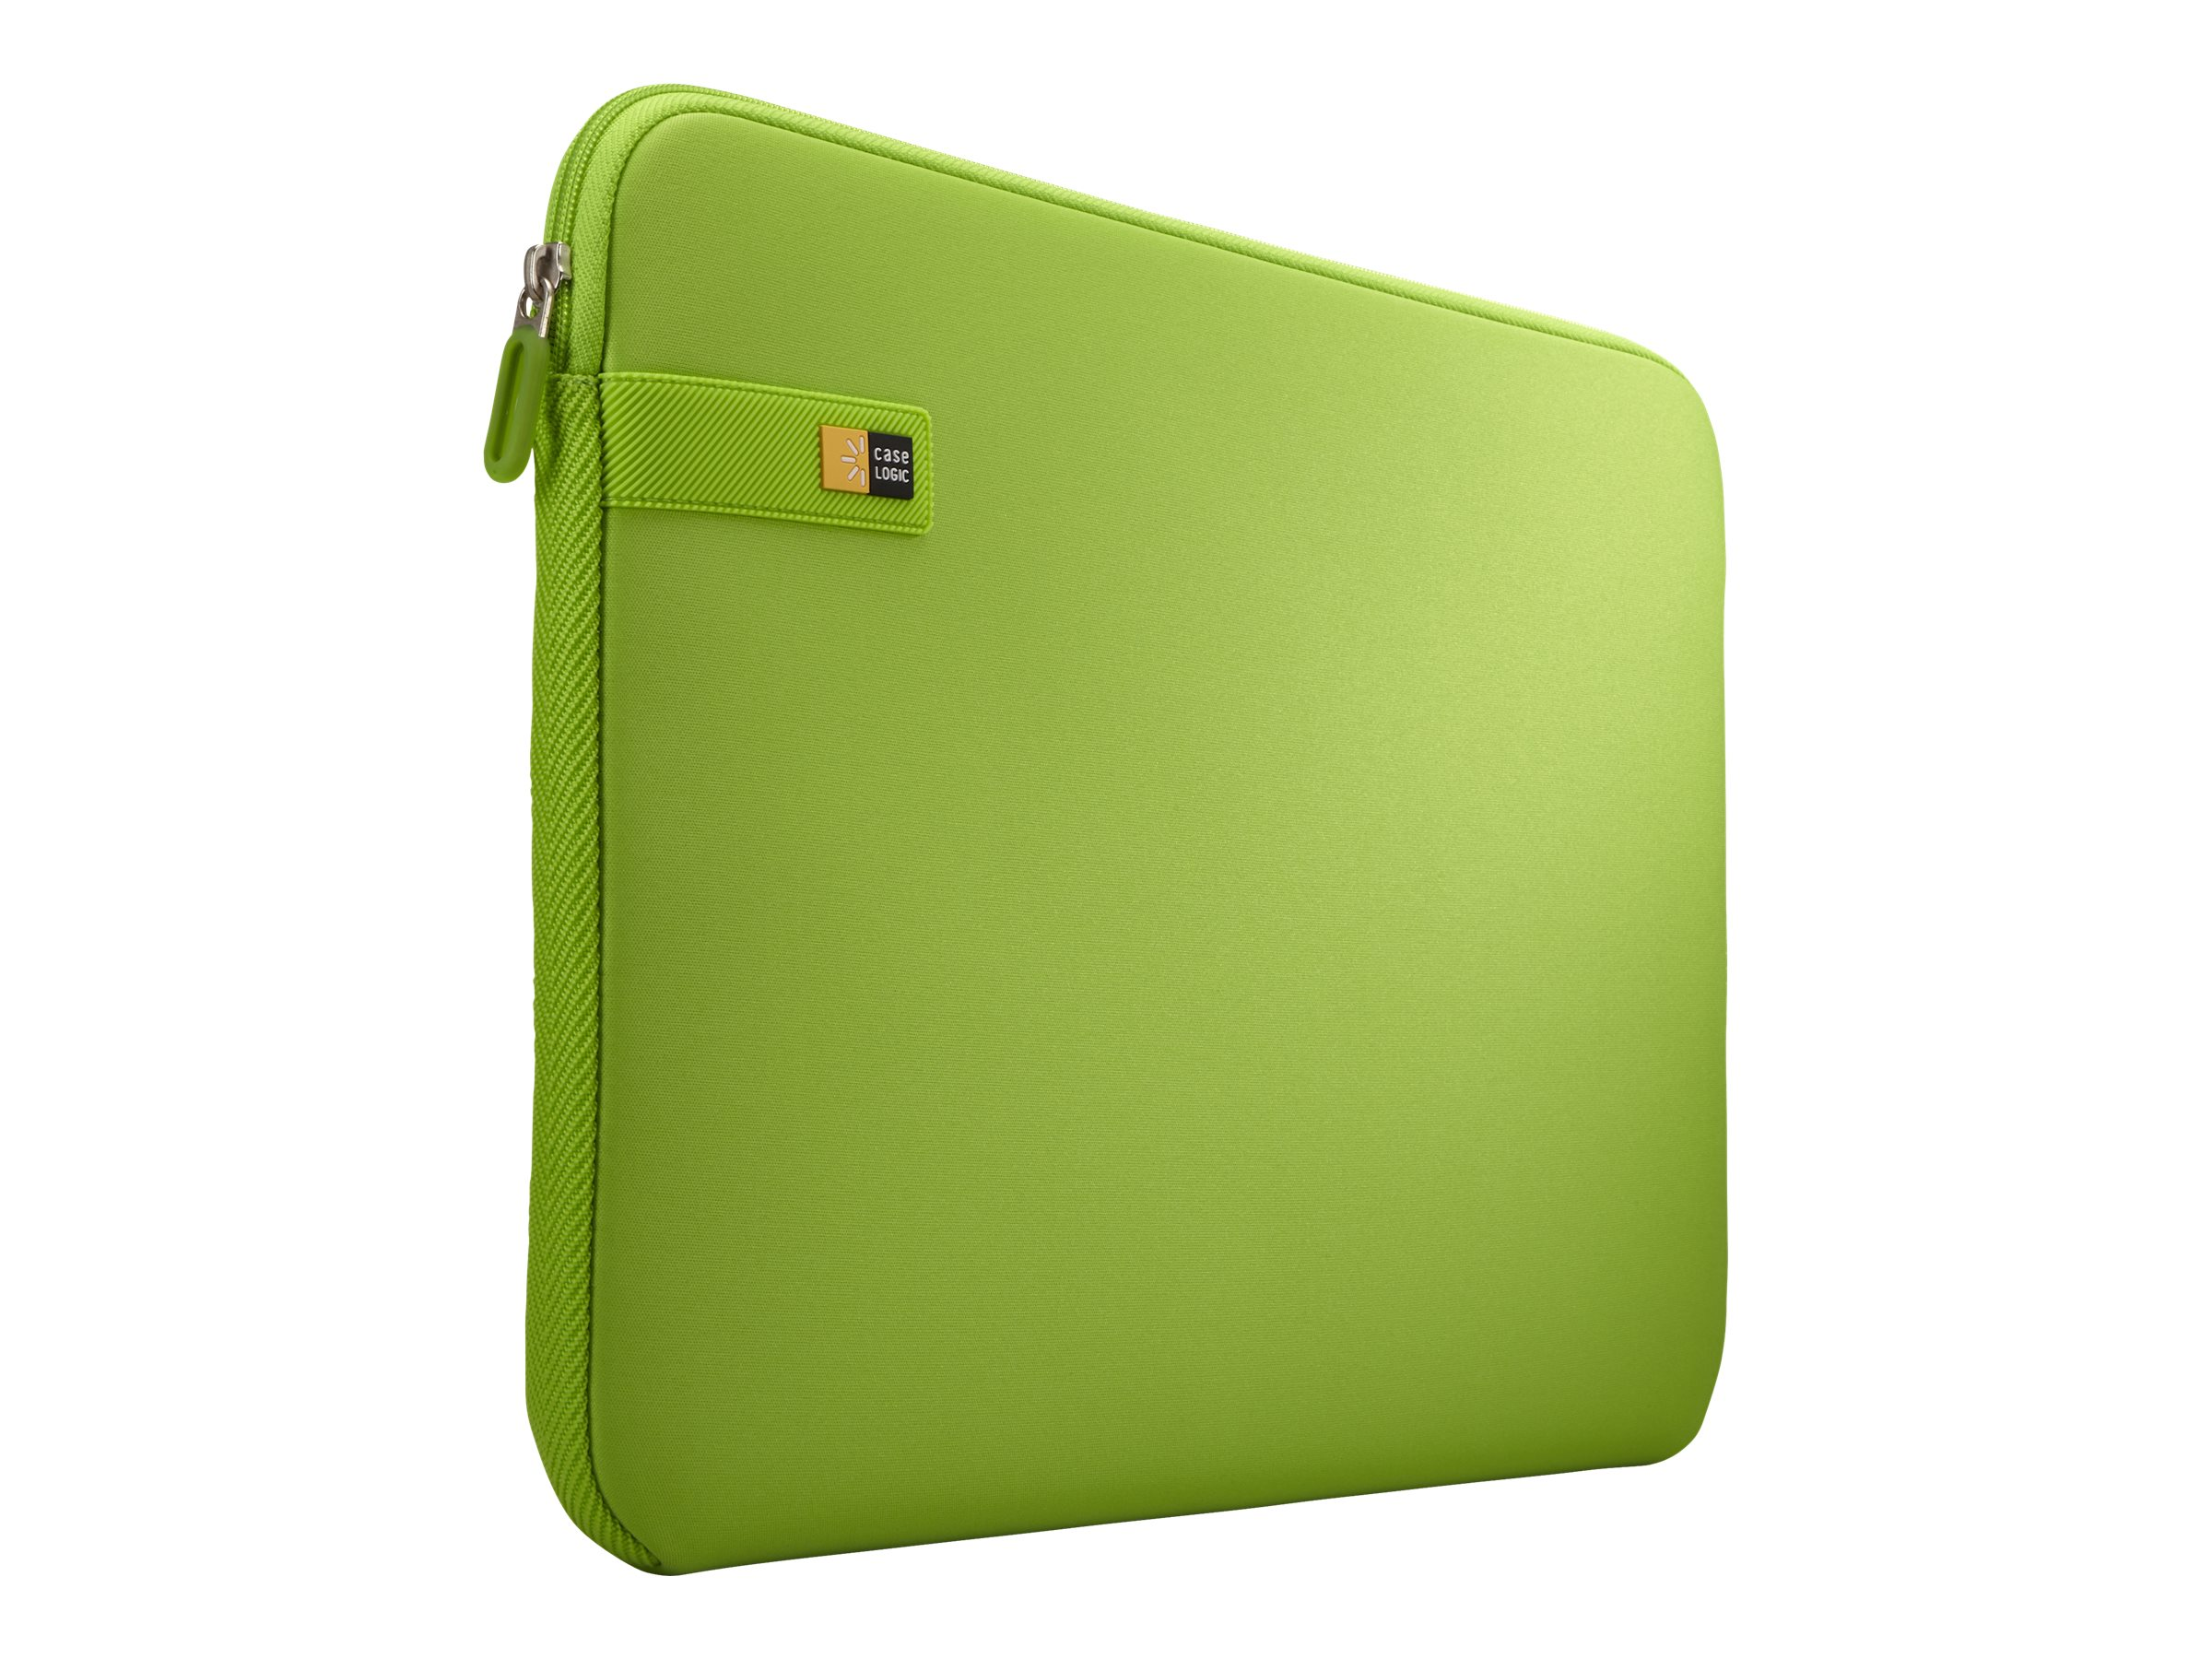 Case Logic Laptop Sleeve 15.6, Lime, LAPS116LIME